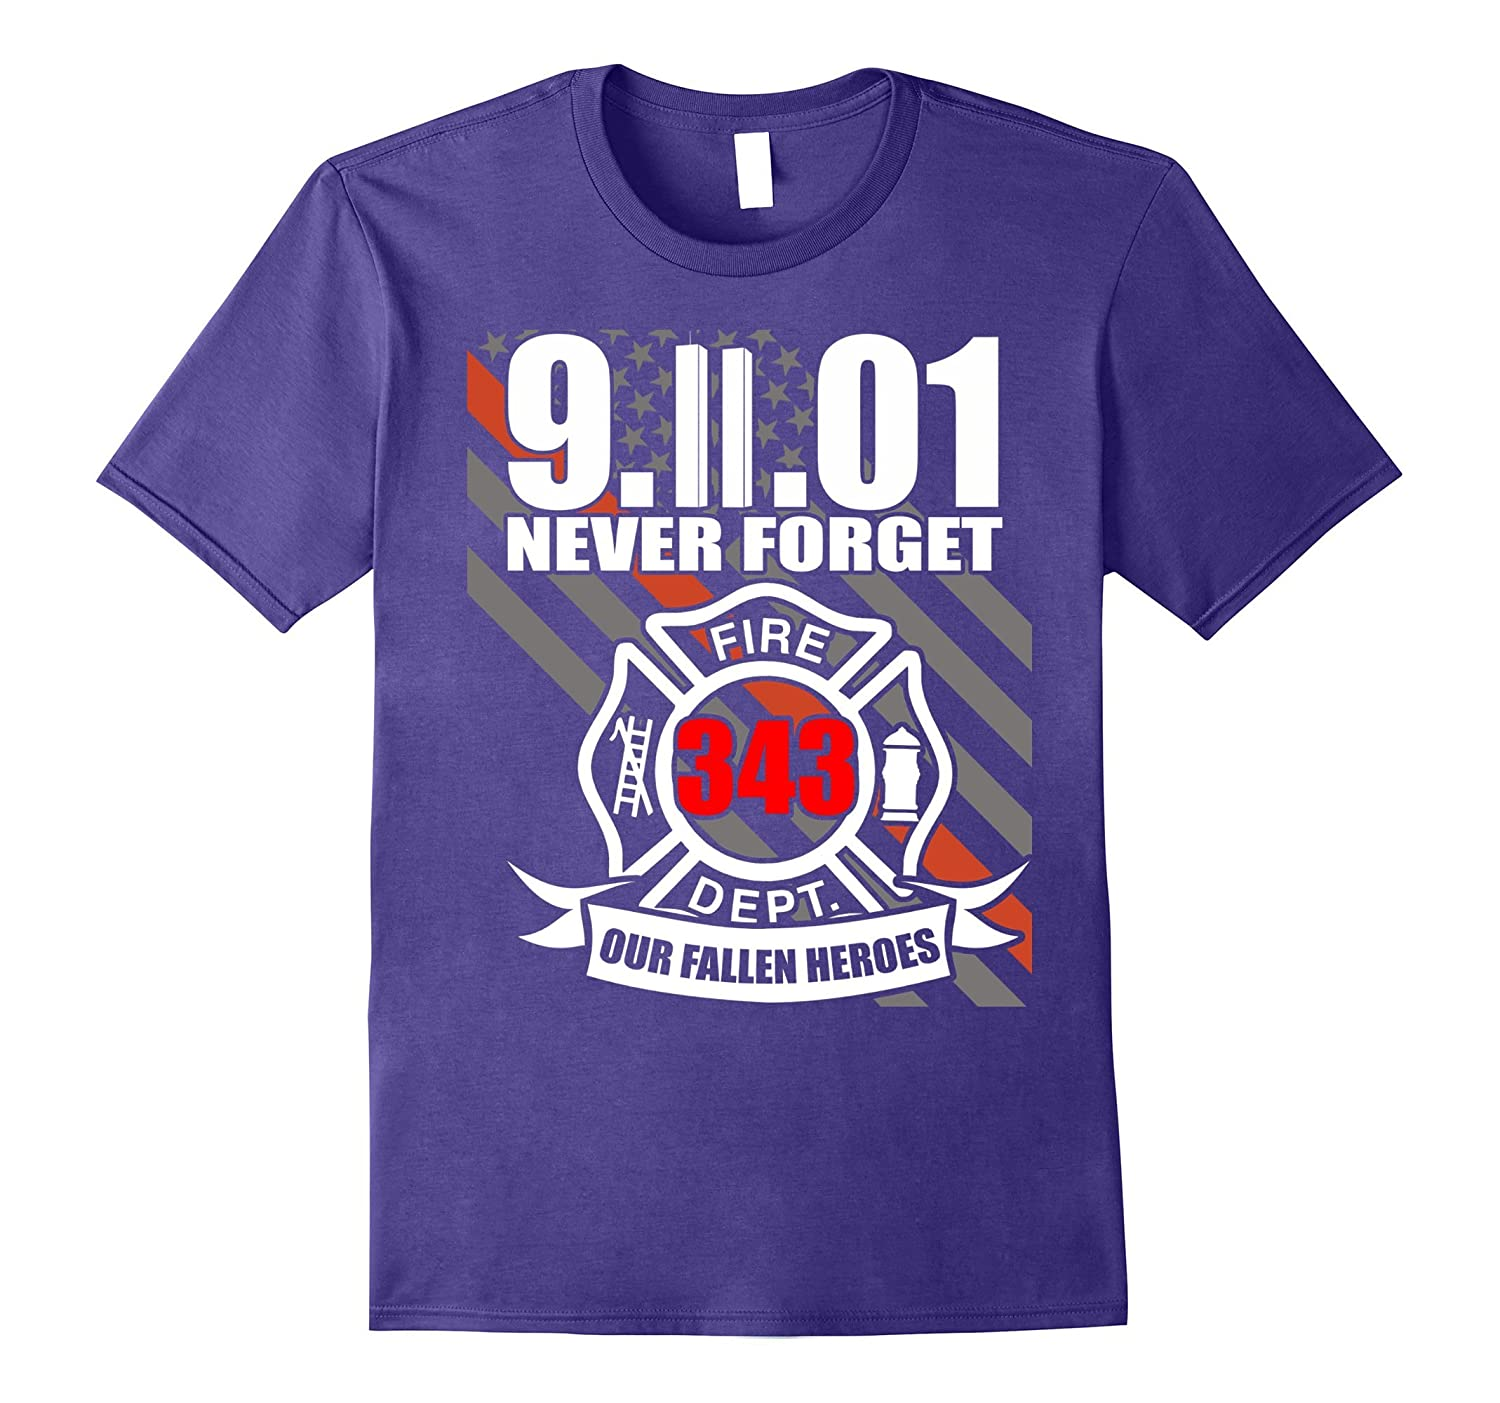 9.11.01 Never forget 343 heroes - Patriot memorial day-CL